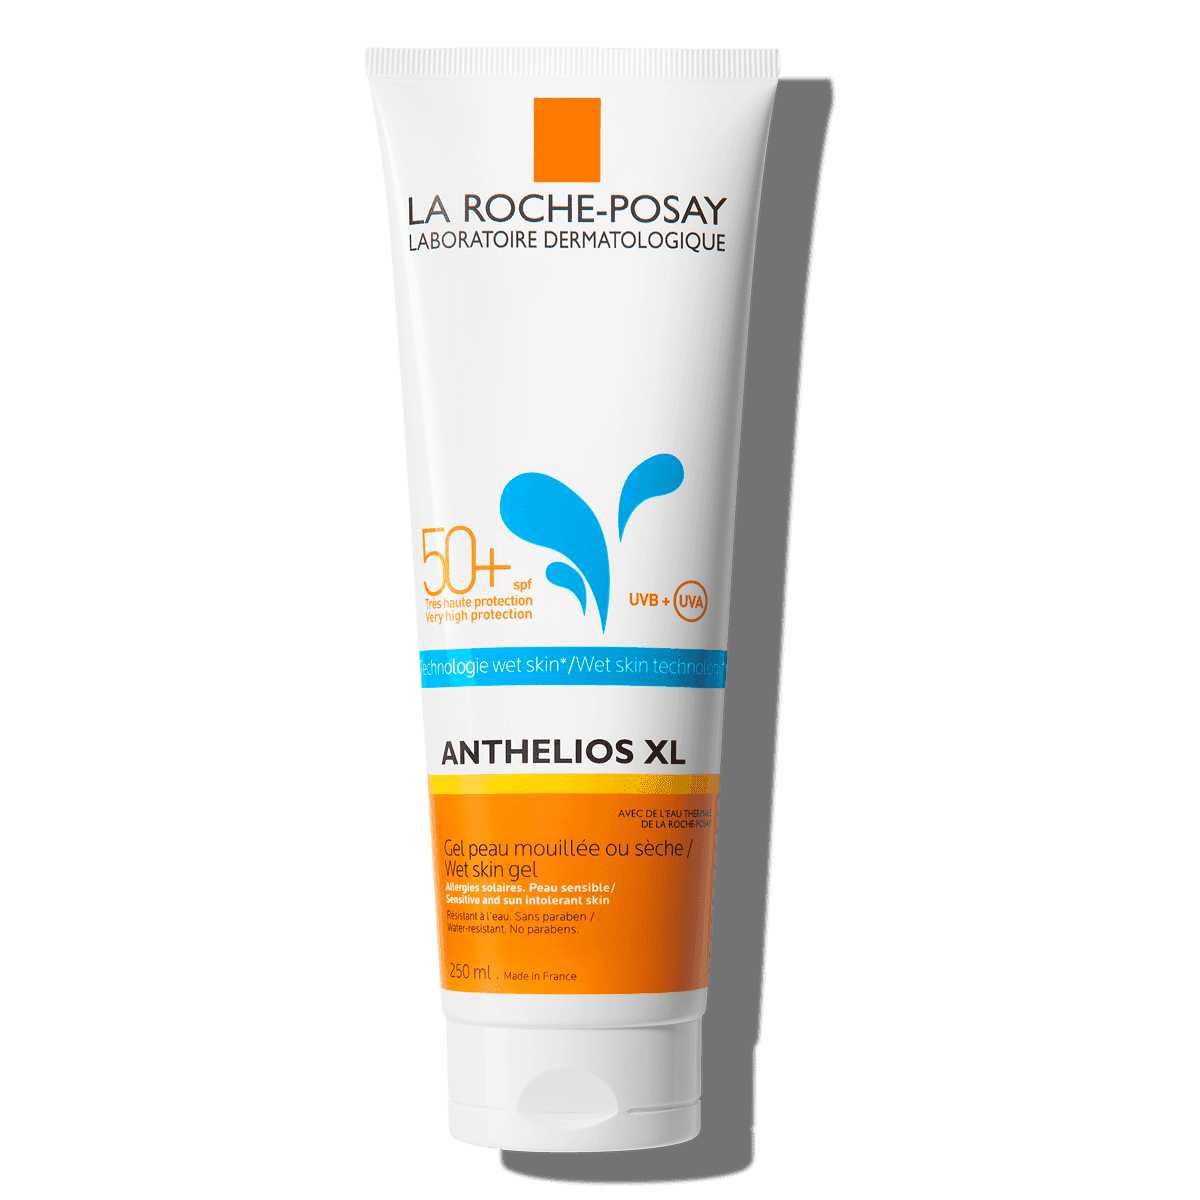 La Roche Posay ProductPage Sun Anthelios XL Wet Skin Gel Spf50 250ml 3